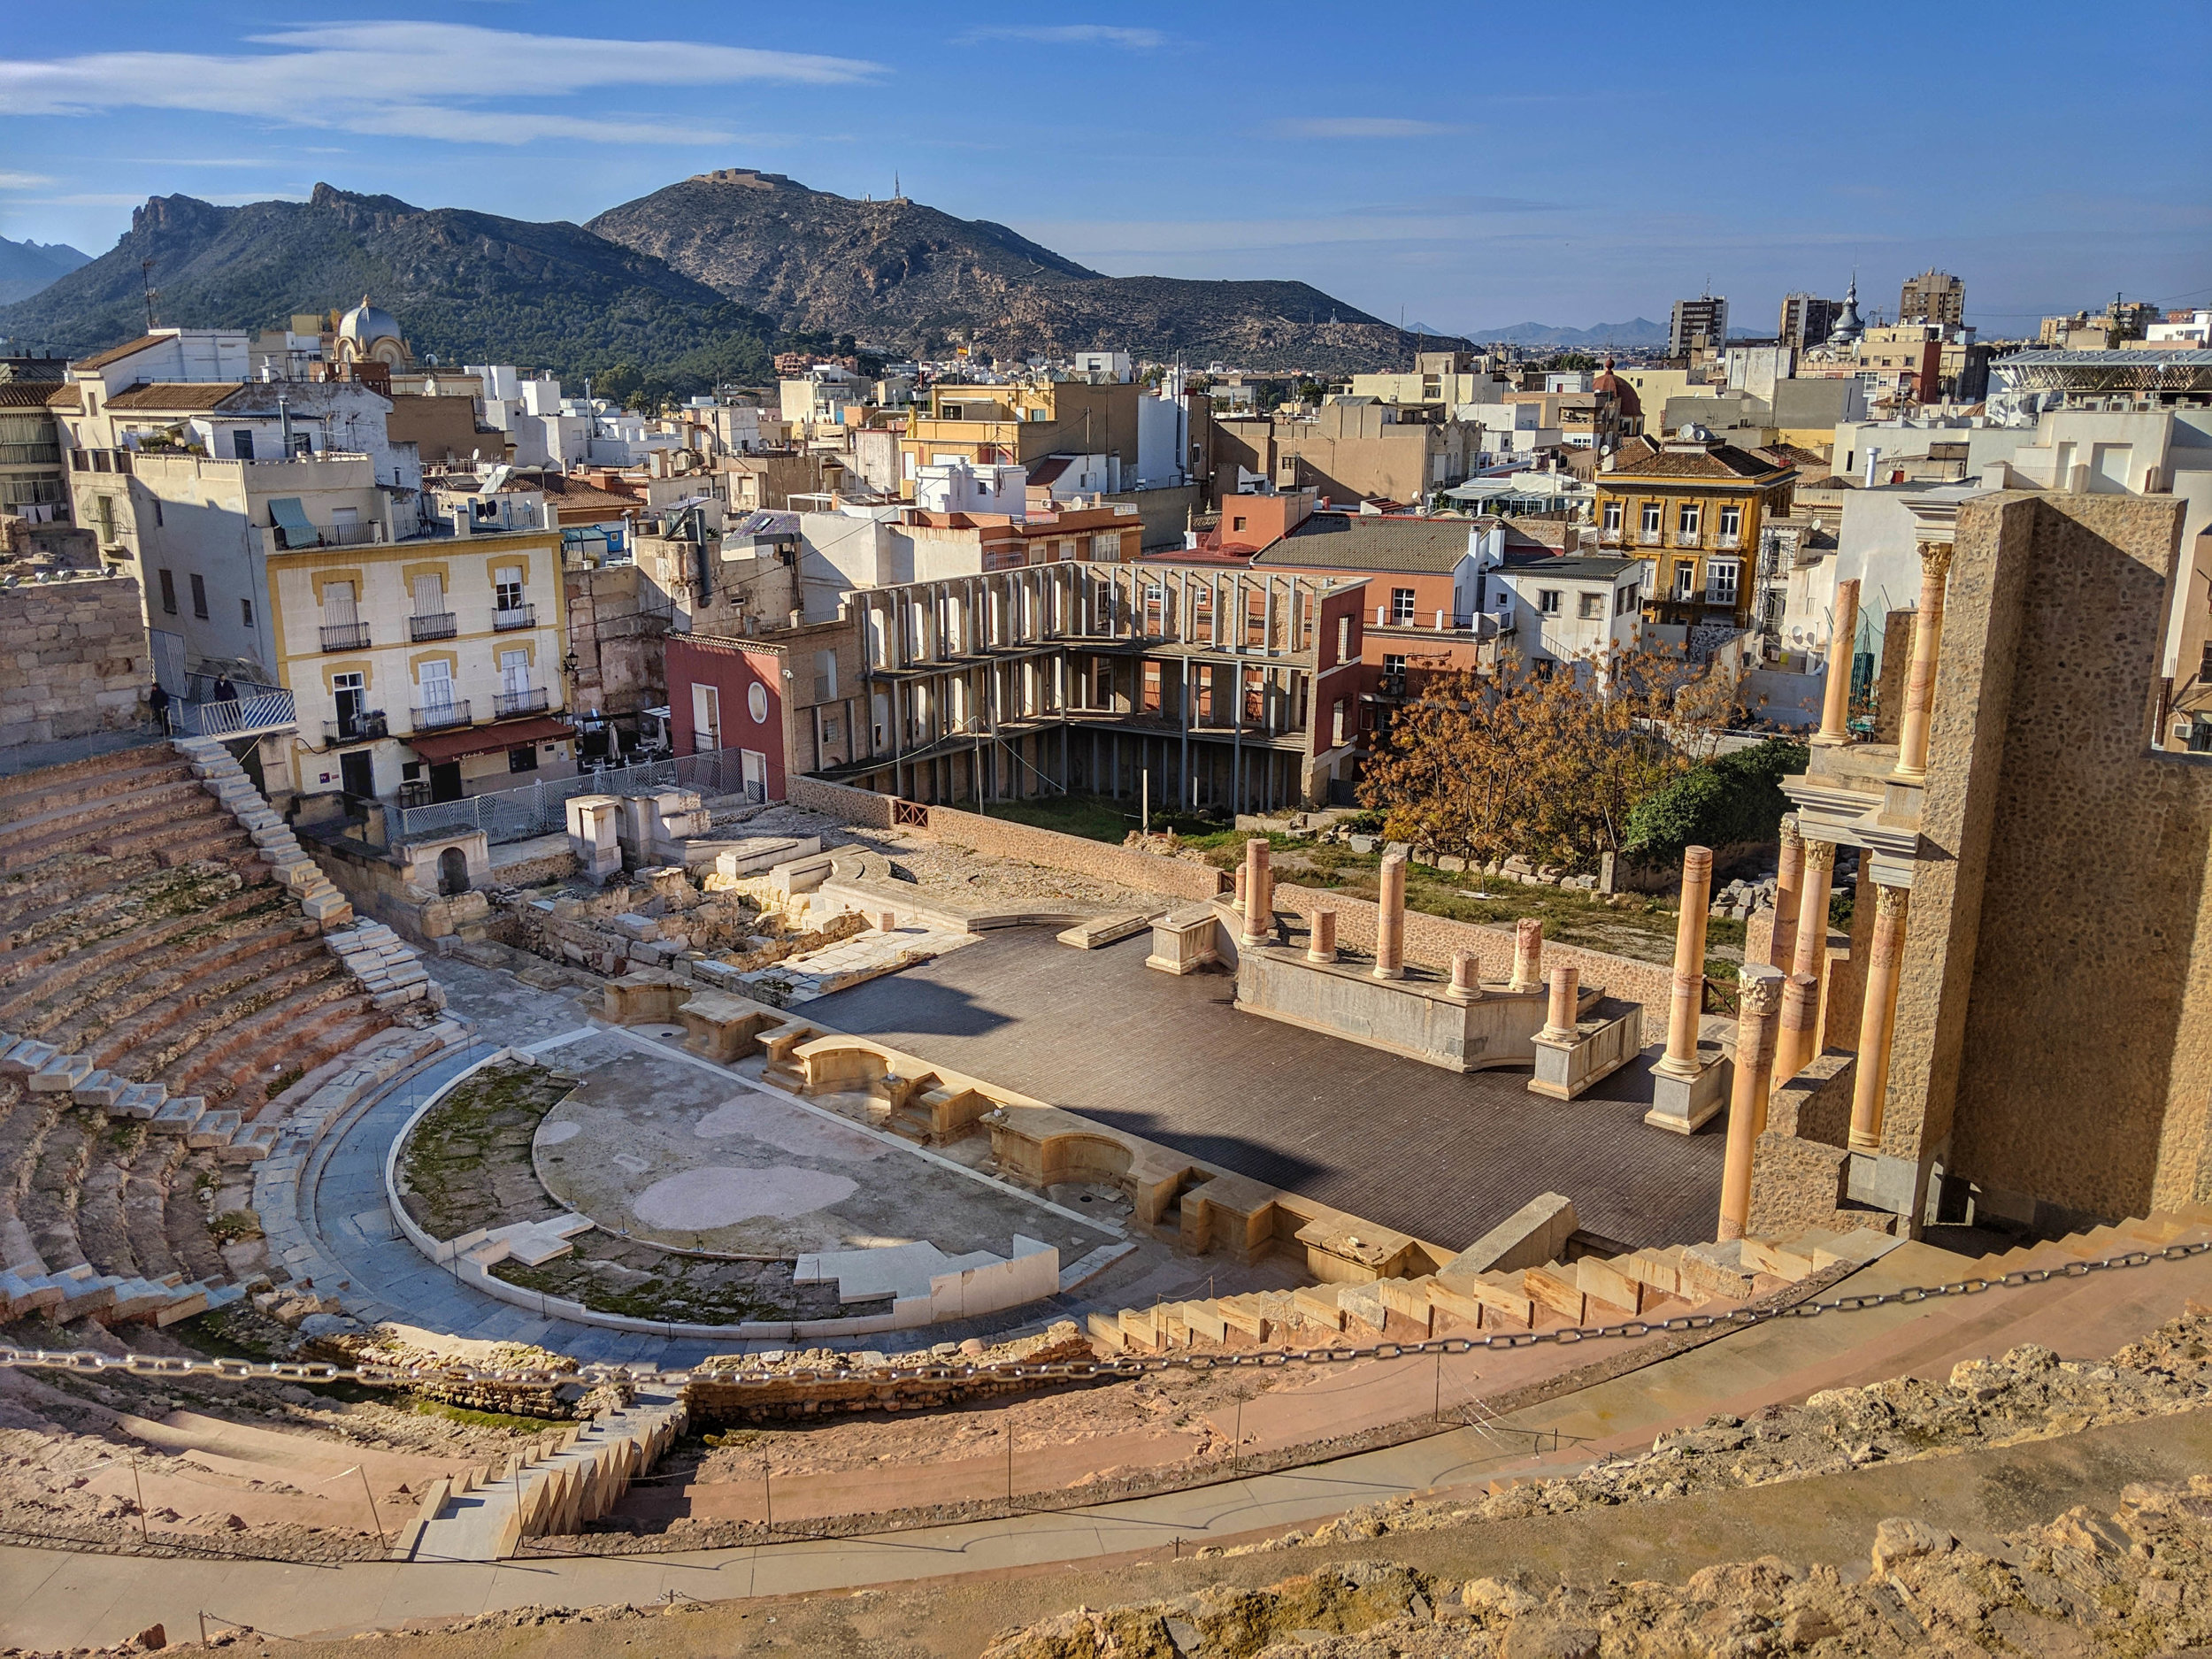 The Roman amphitheater nestled in the center of a modern city